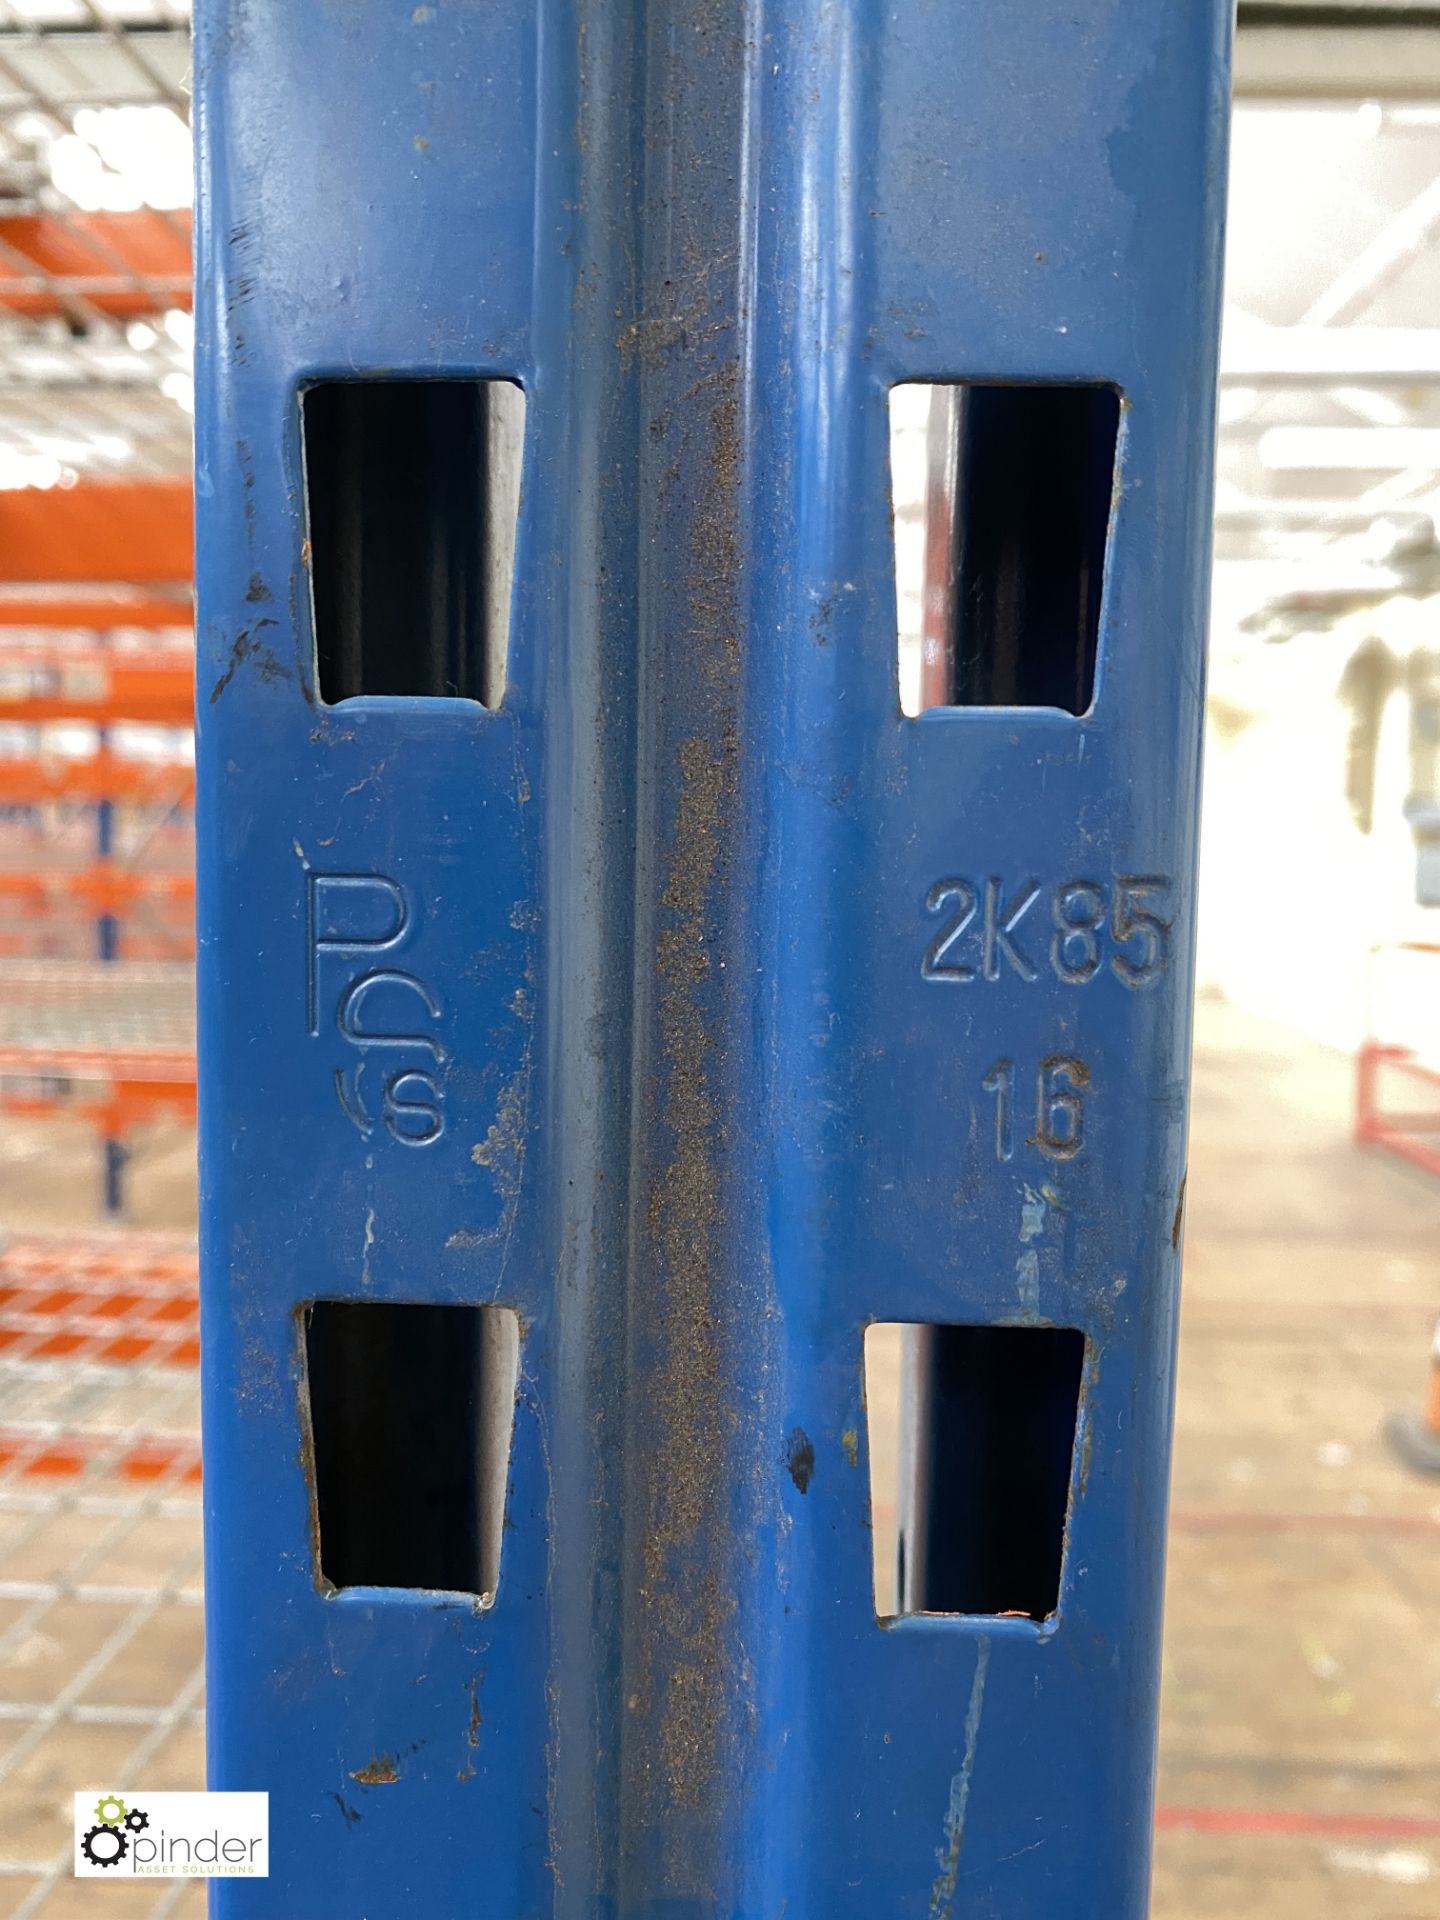 6 bays PSS 2K85 16 boltless Stock Racking, comprising 7 uprights 2400mm x 1200mm, 48 beams 2700mm, - Image 4 of 4